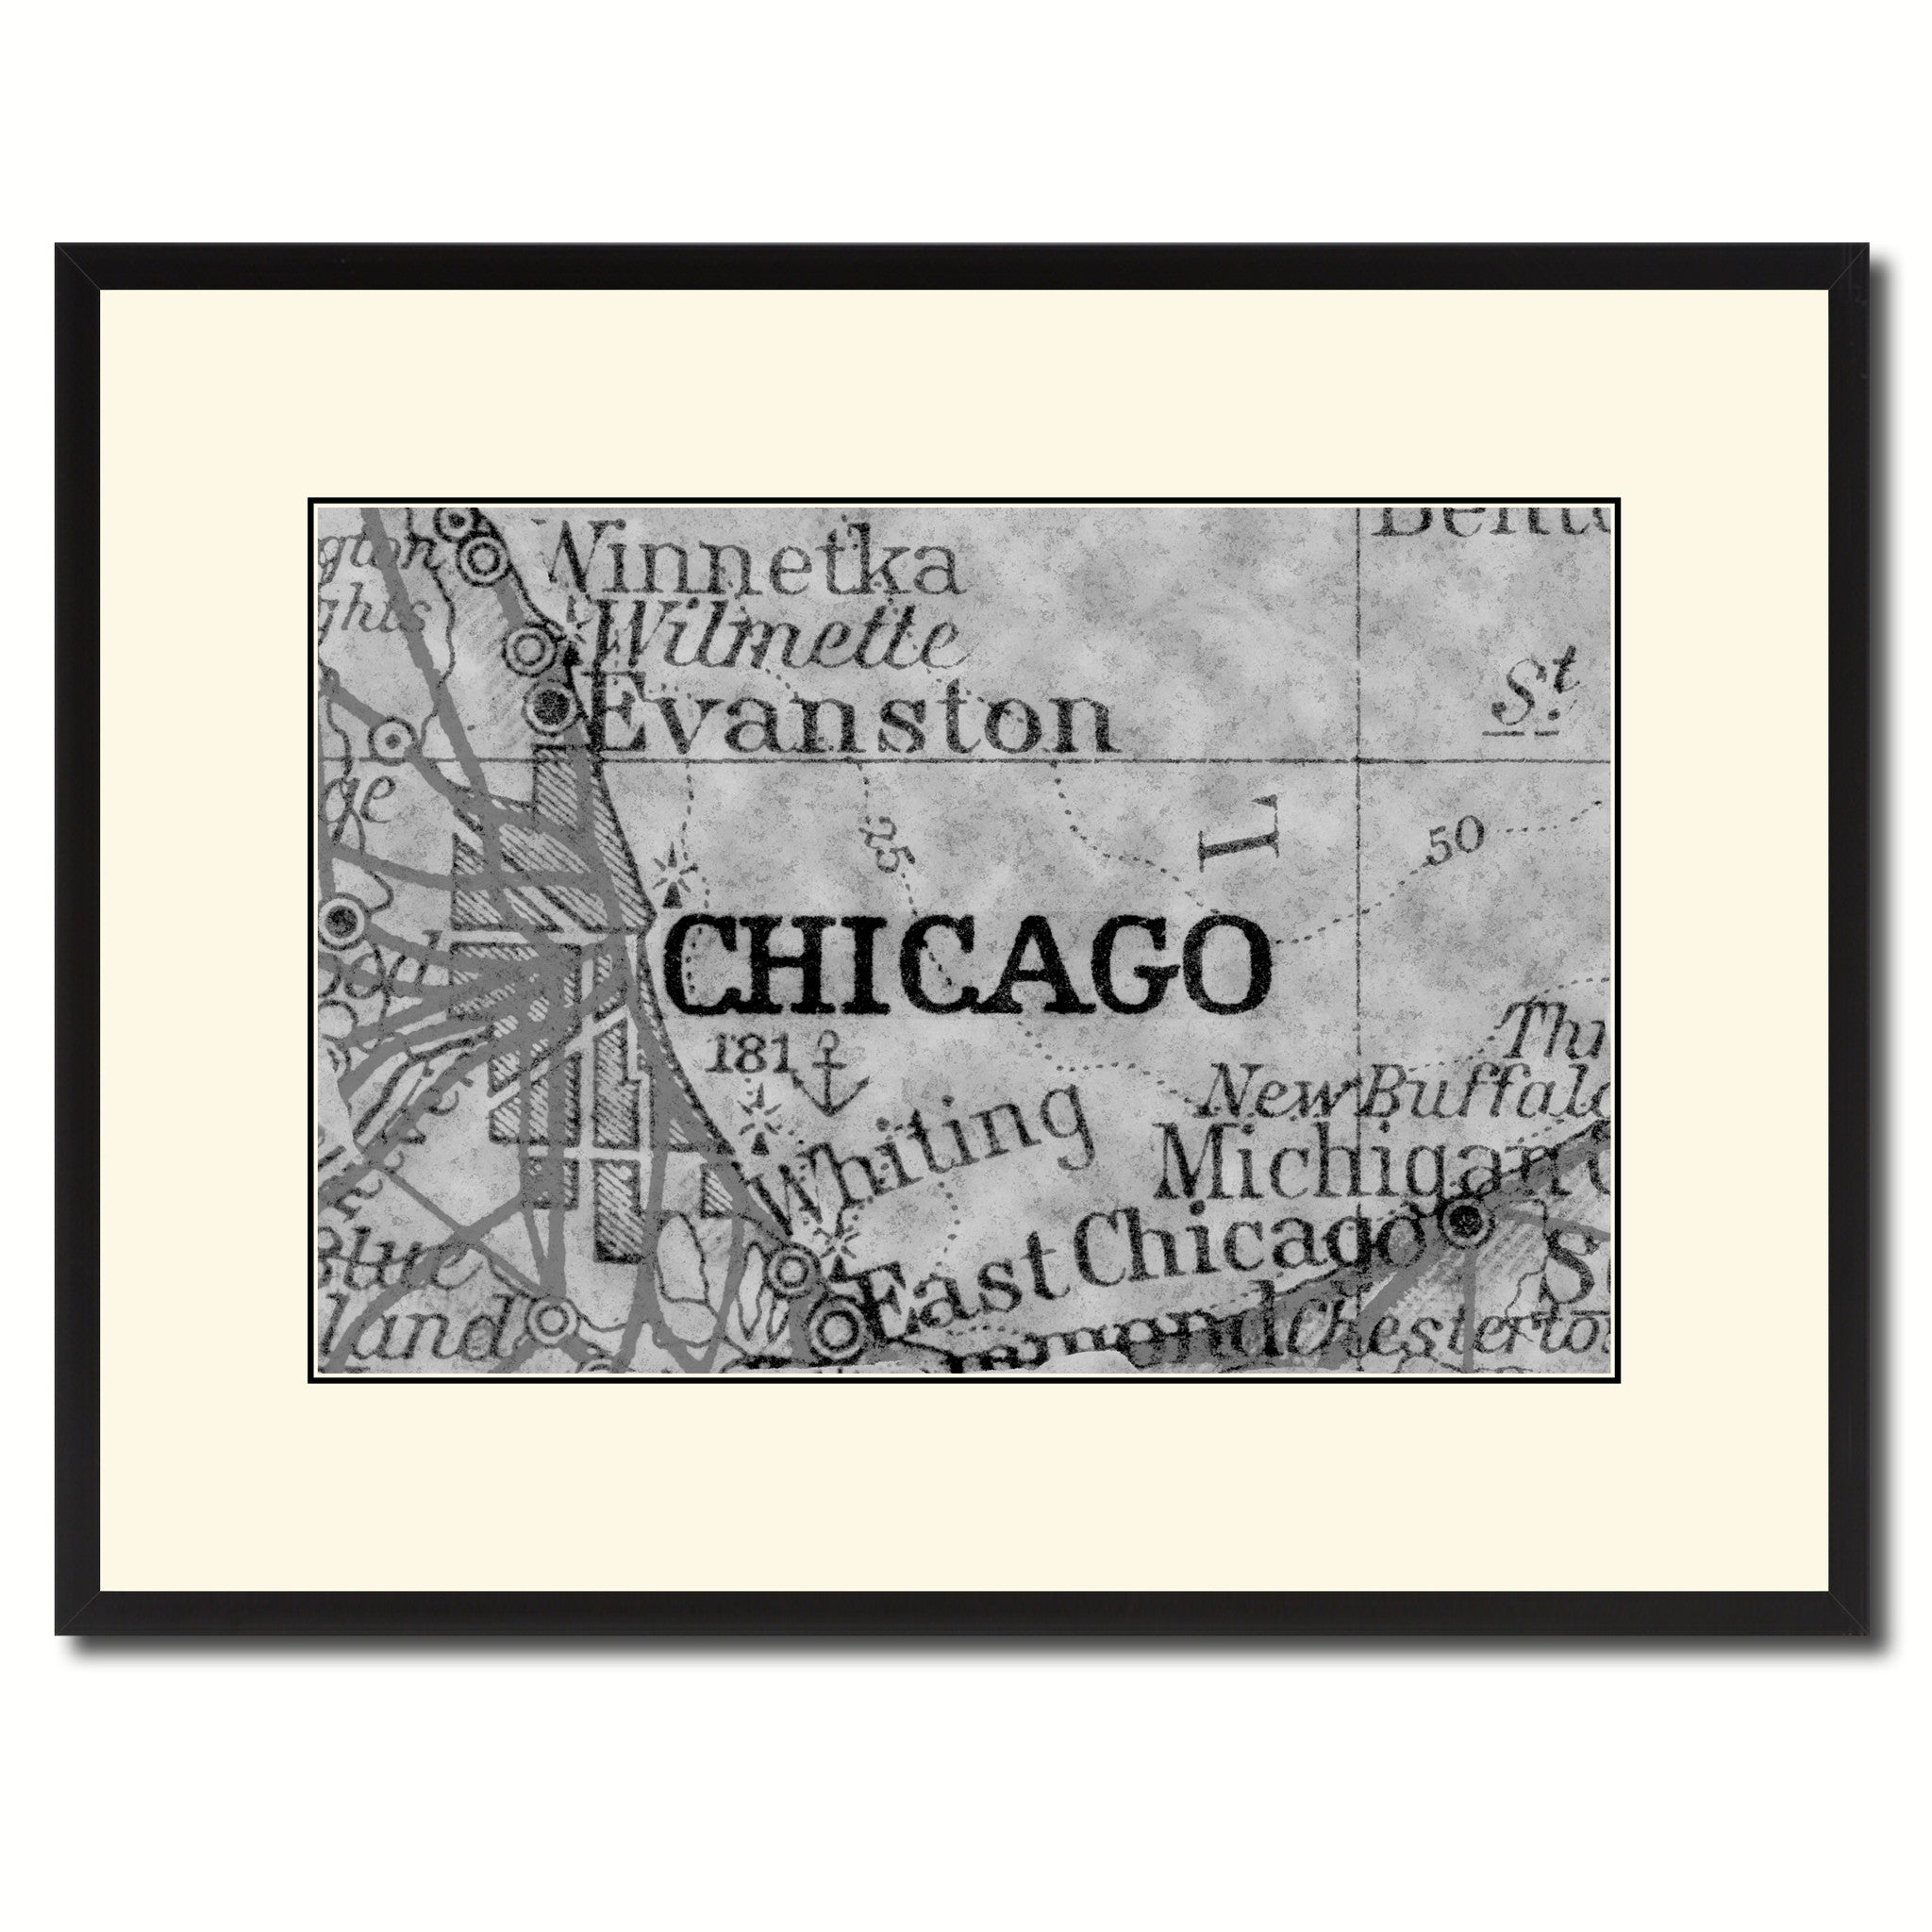 Chicago Illinois Vintage BW Map Home Decor Wall Art Bedroom Liviingroom Housewarming Birthday SpotColorArt